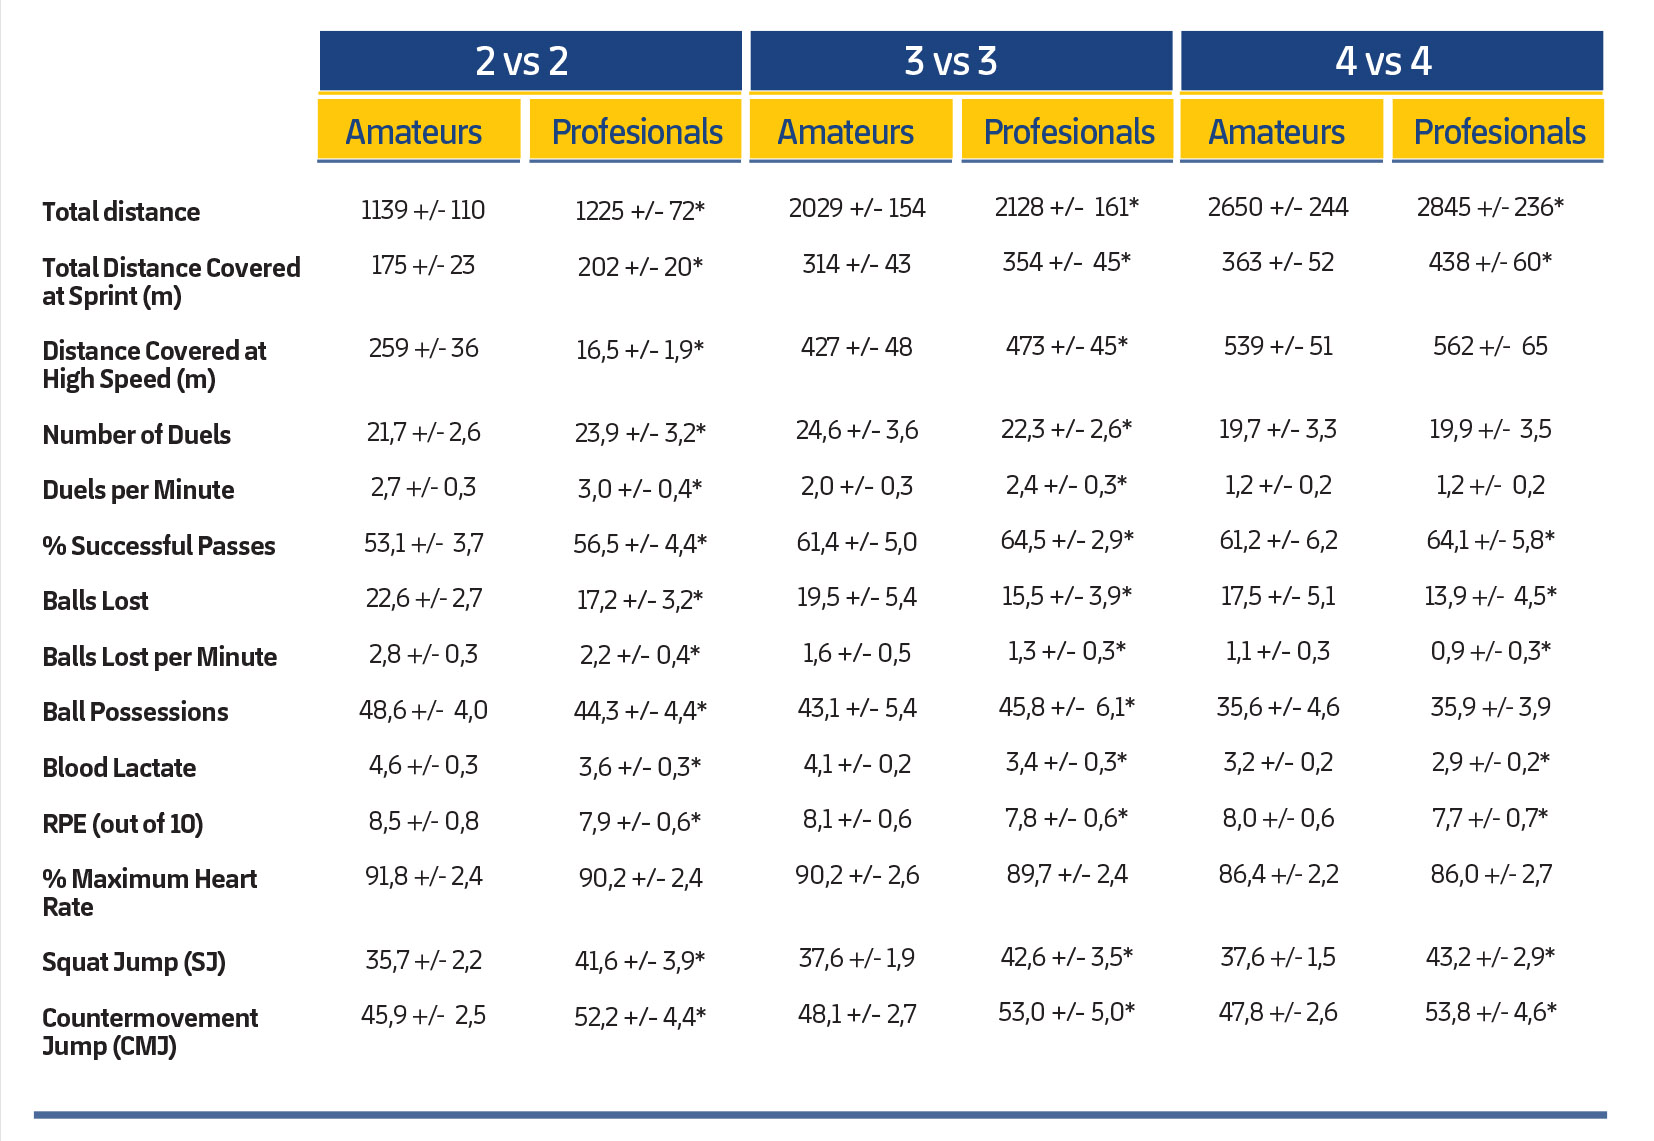 Table 2 Physiological Responses and Technical-Tactical and Physical Activities During a 2 vs. 2, 3 vs. 3 and 4 vs. 4 Match in Amateurs and Professionals. * Significant differences.RPE, SJ and CMJ are measured immediately after each exercise. Blood lactate levels are taken three minutes after completing each task.